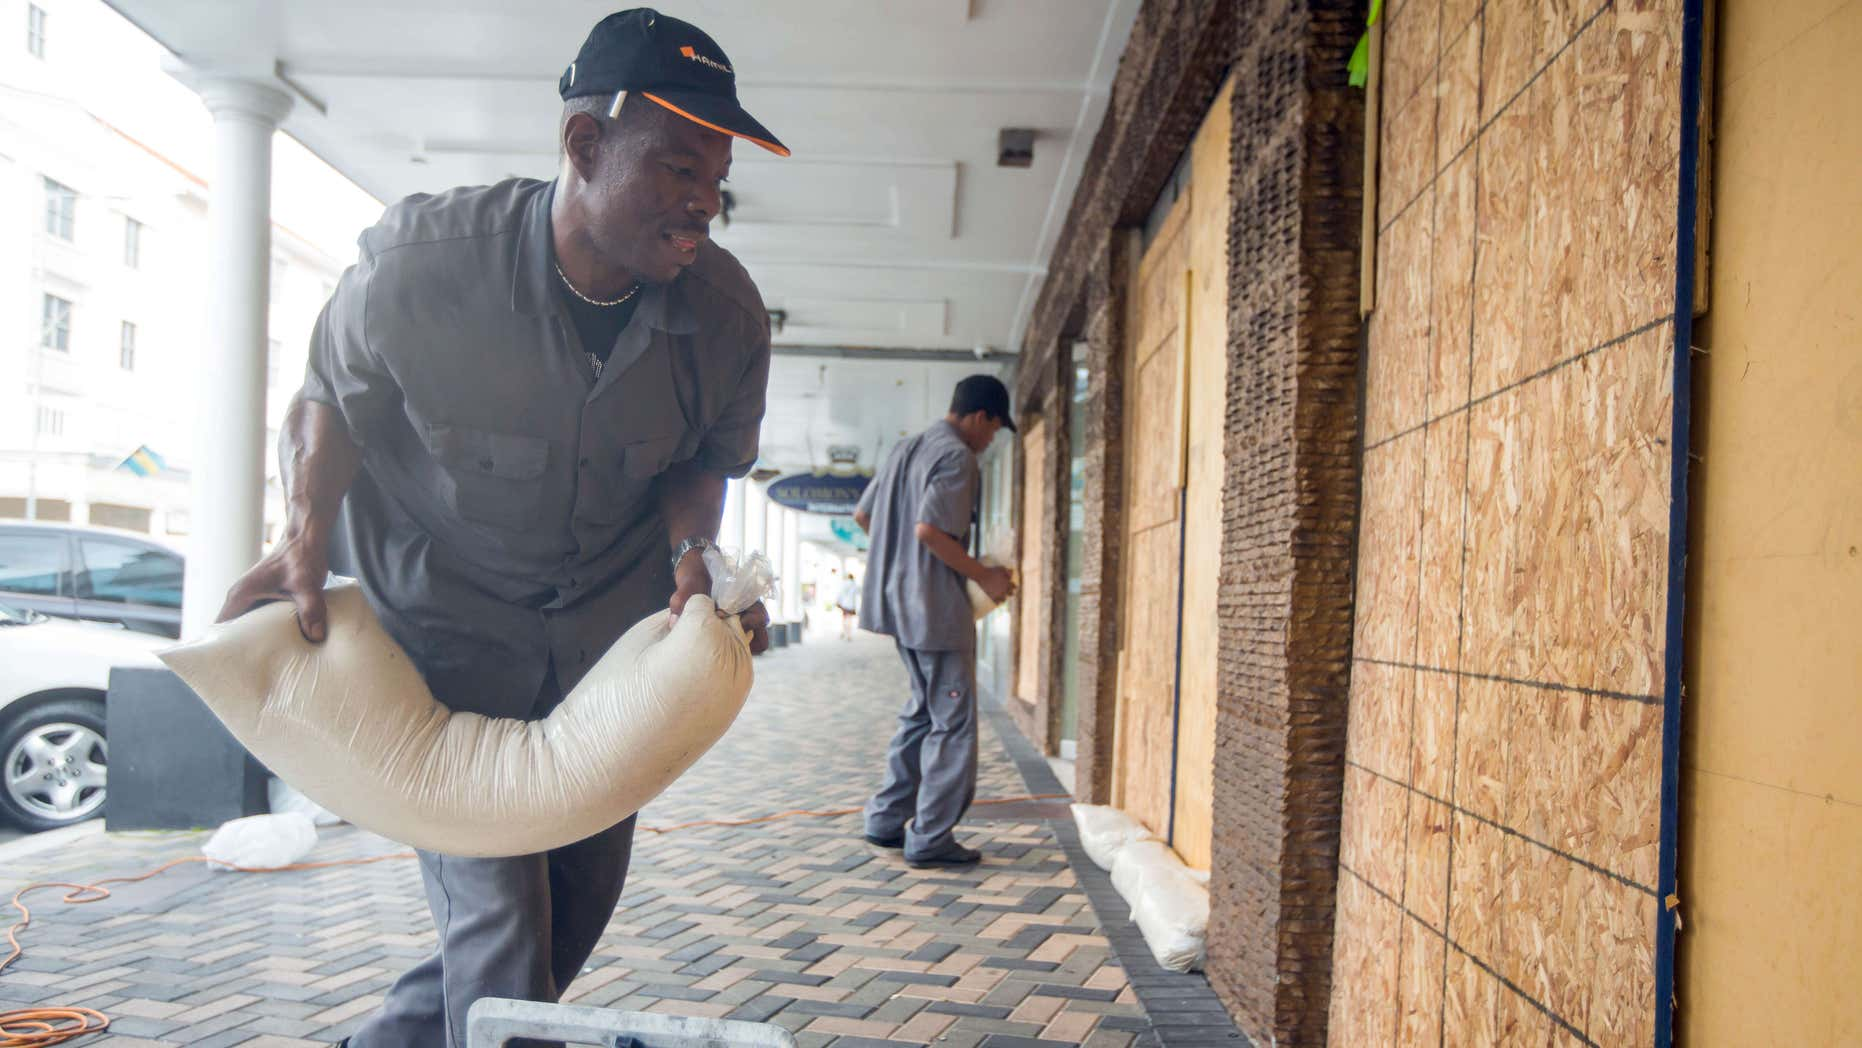 Oct. 1, 2015: Perry Williams, 47, left, and Alaric Nixon, 28, place sandbags on the storefront of Diamond's International store, in preparation for the arrival of hurricane Joaquin in Nassau, Bahamas.